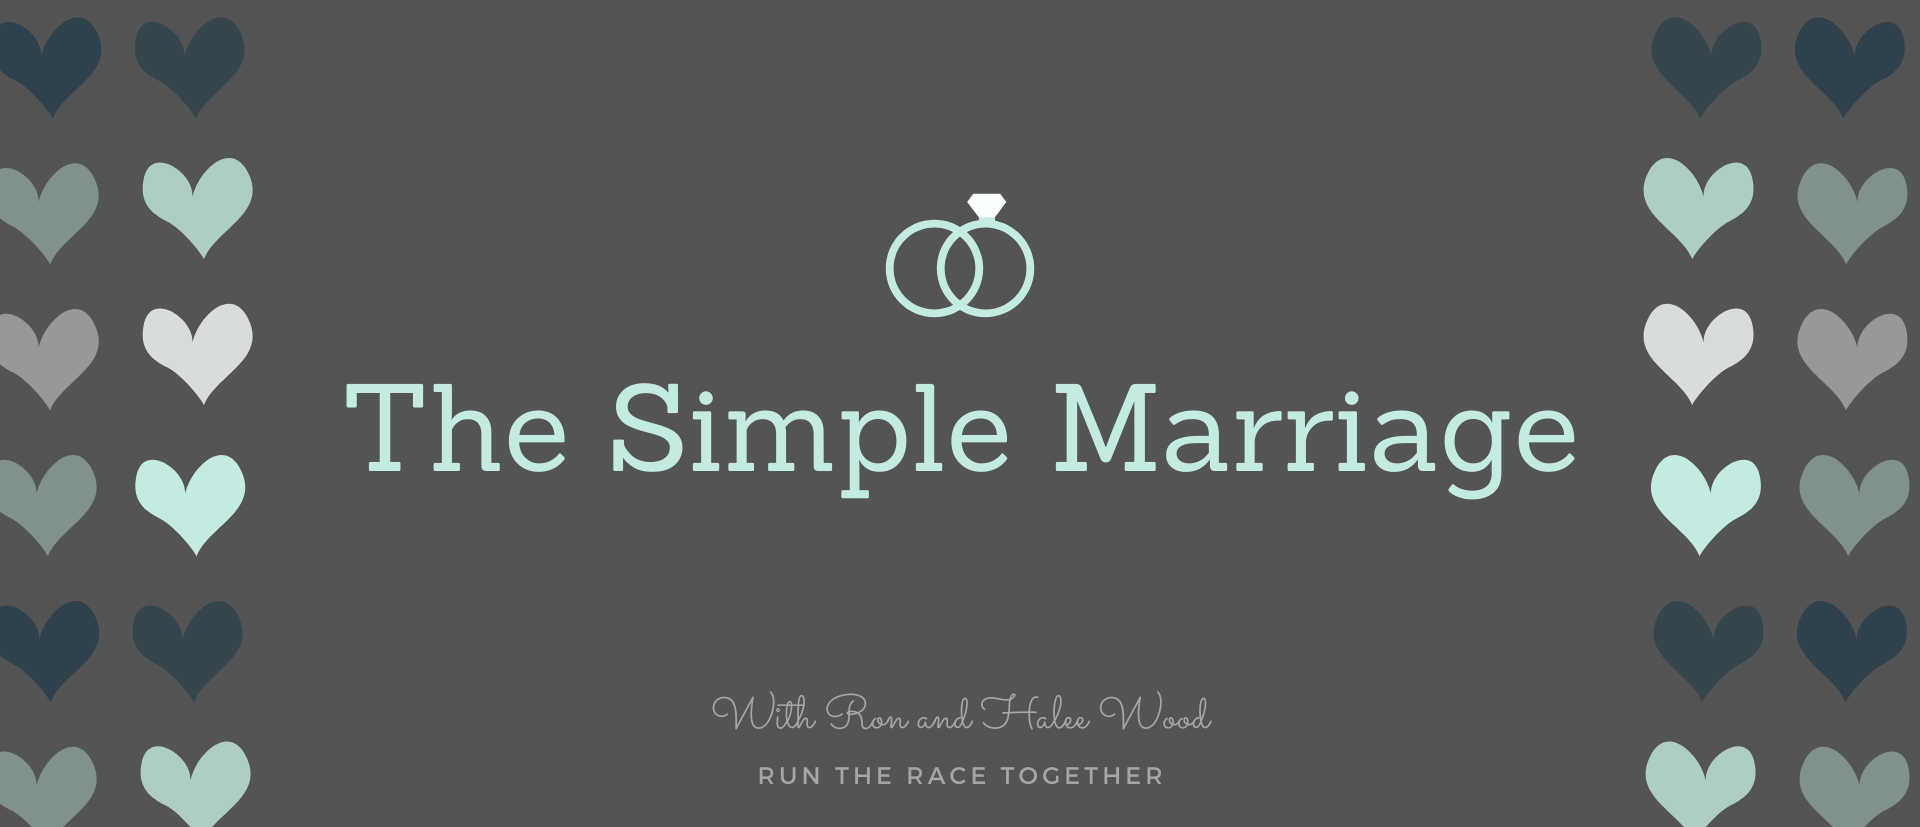 The Simple Marriage FB Title